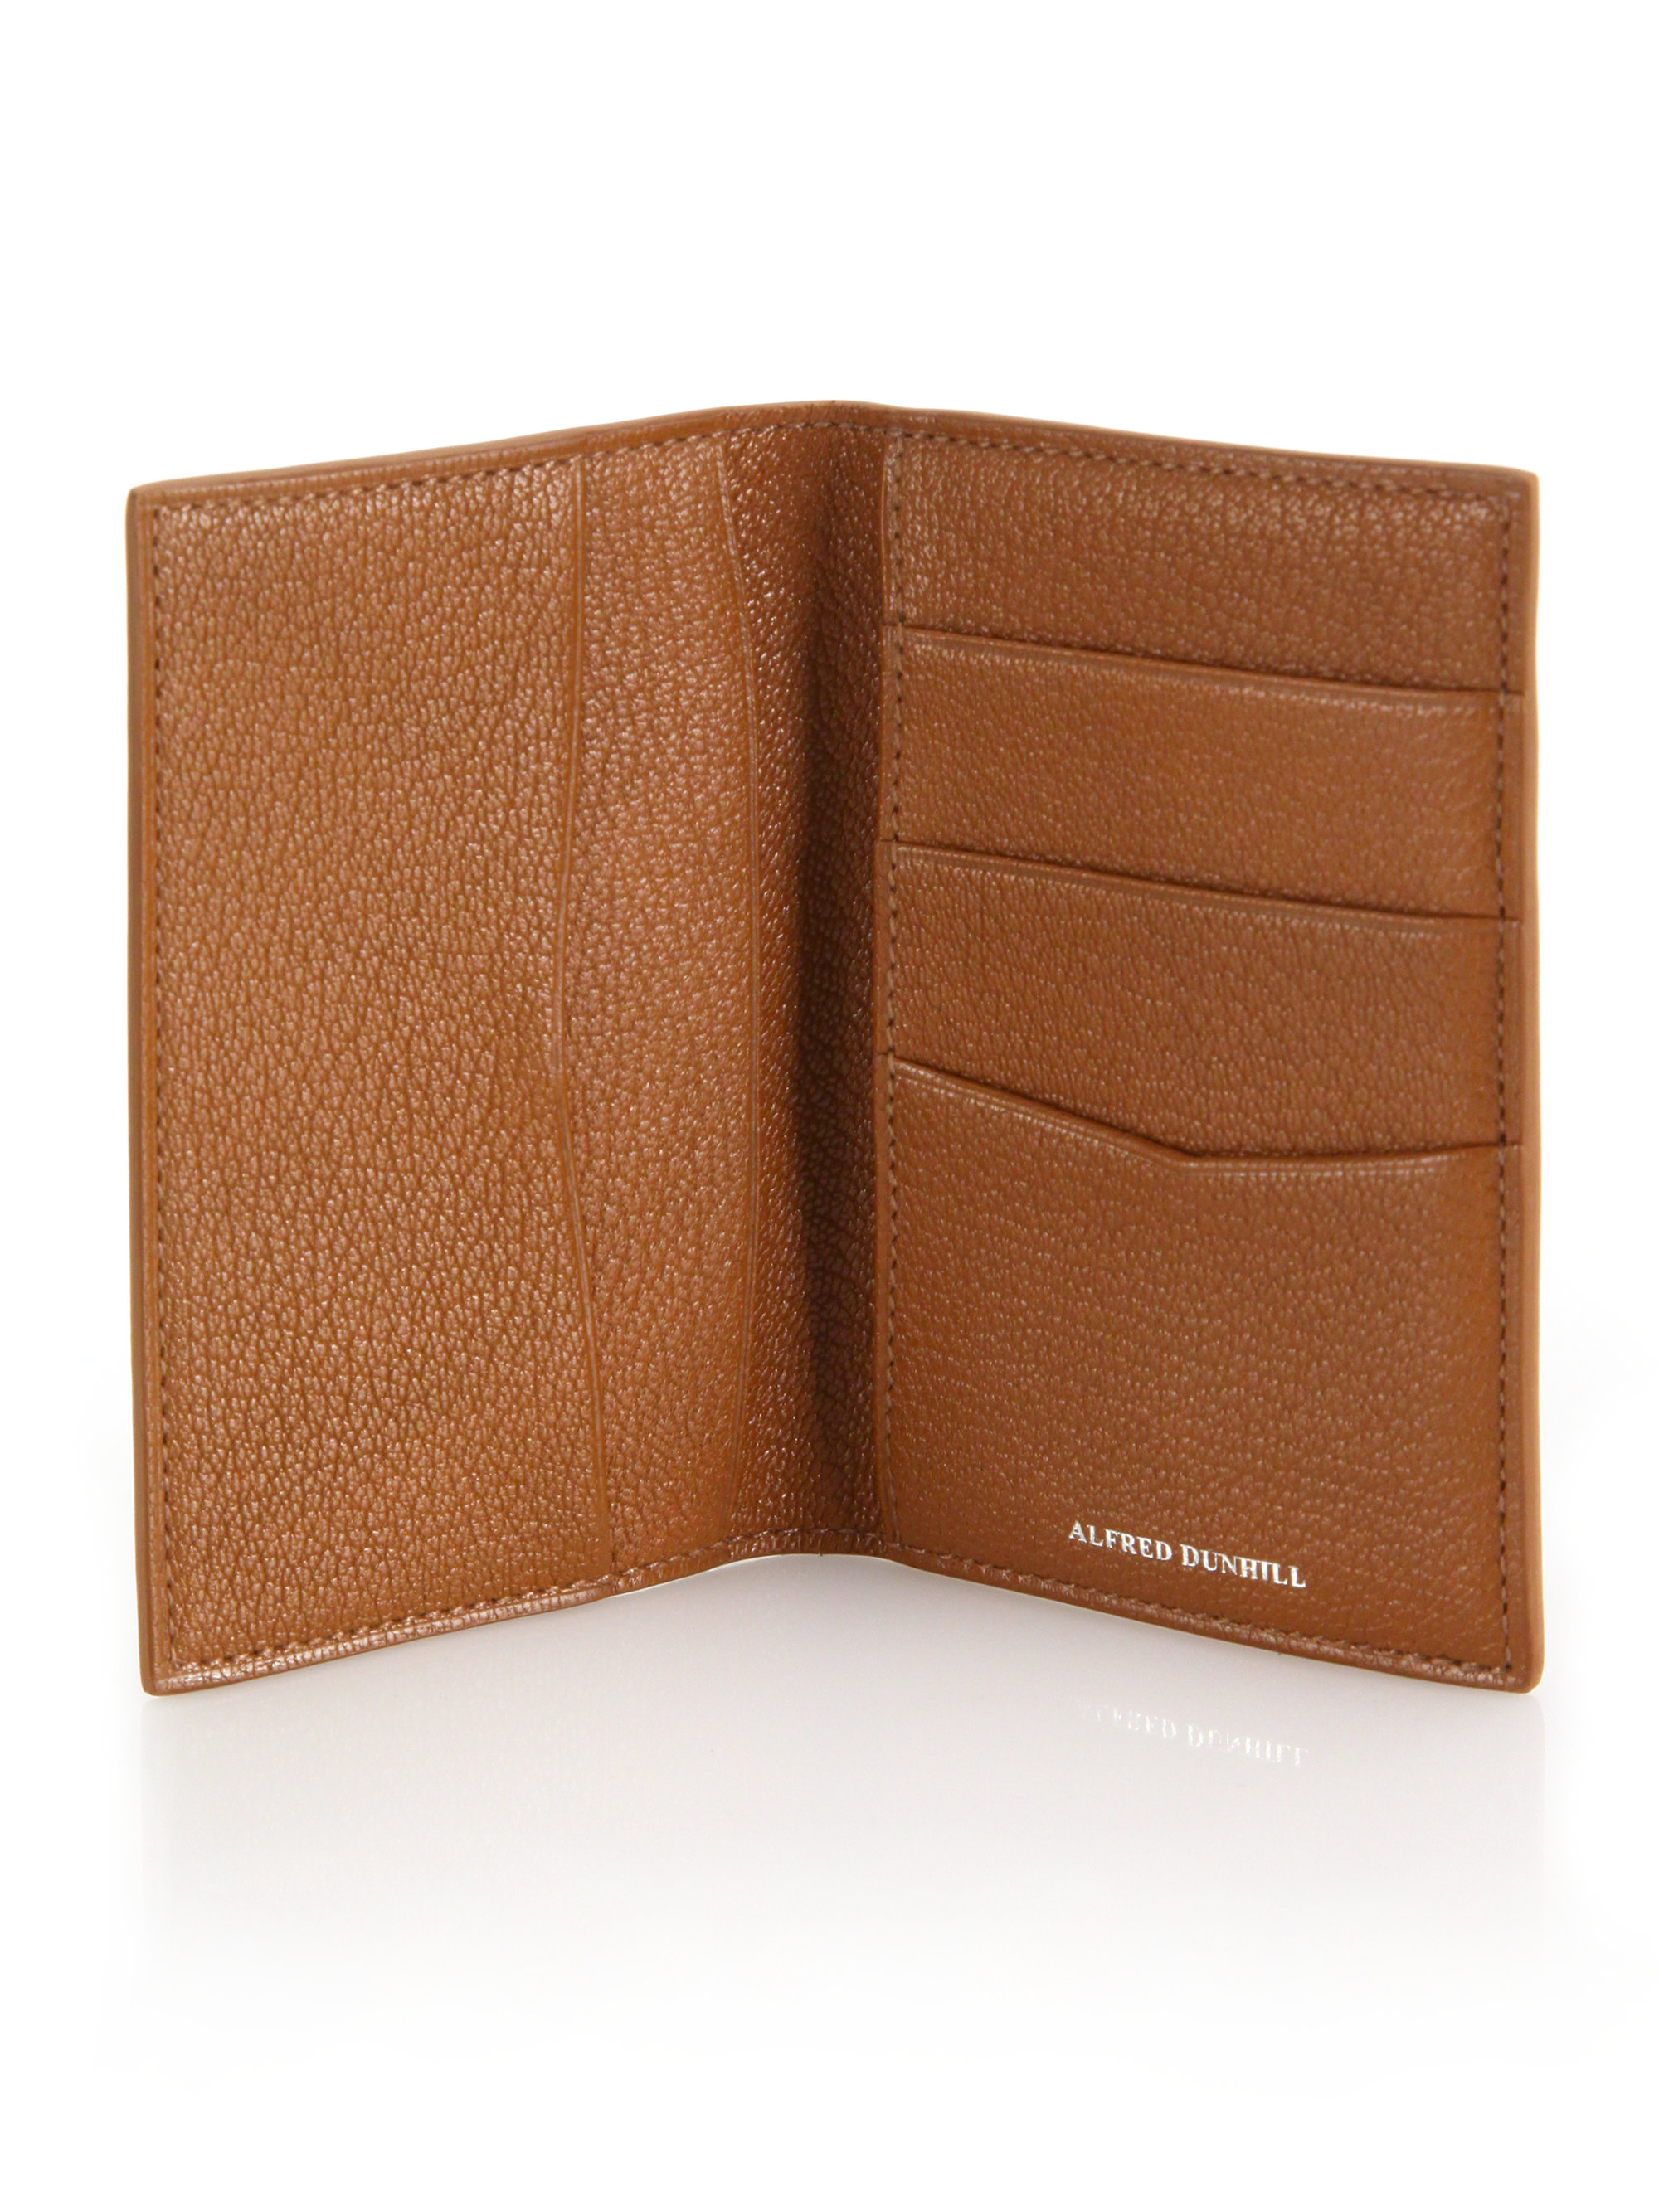 Lyst - Dunhill Textured Leather Business Card Holder in Brown for Men